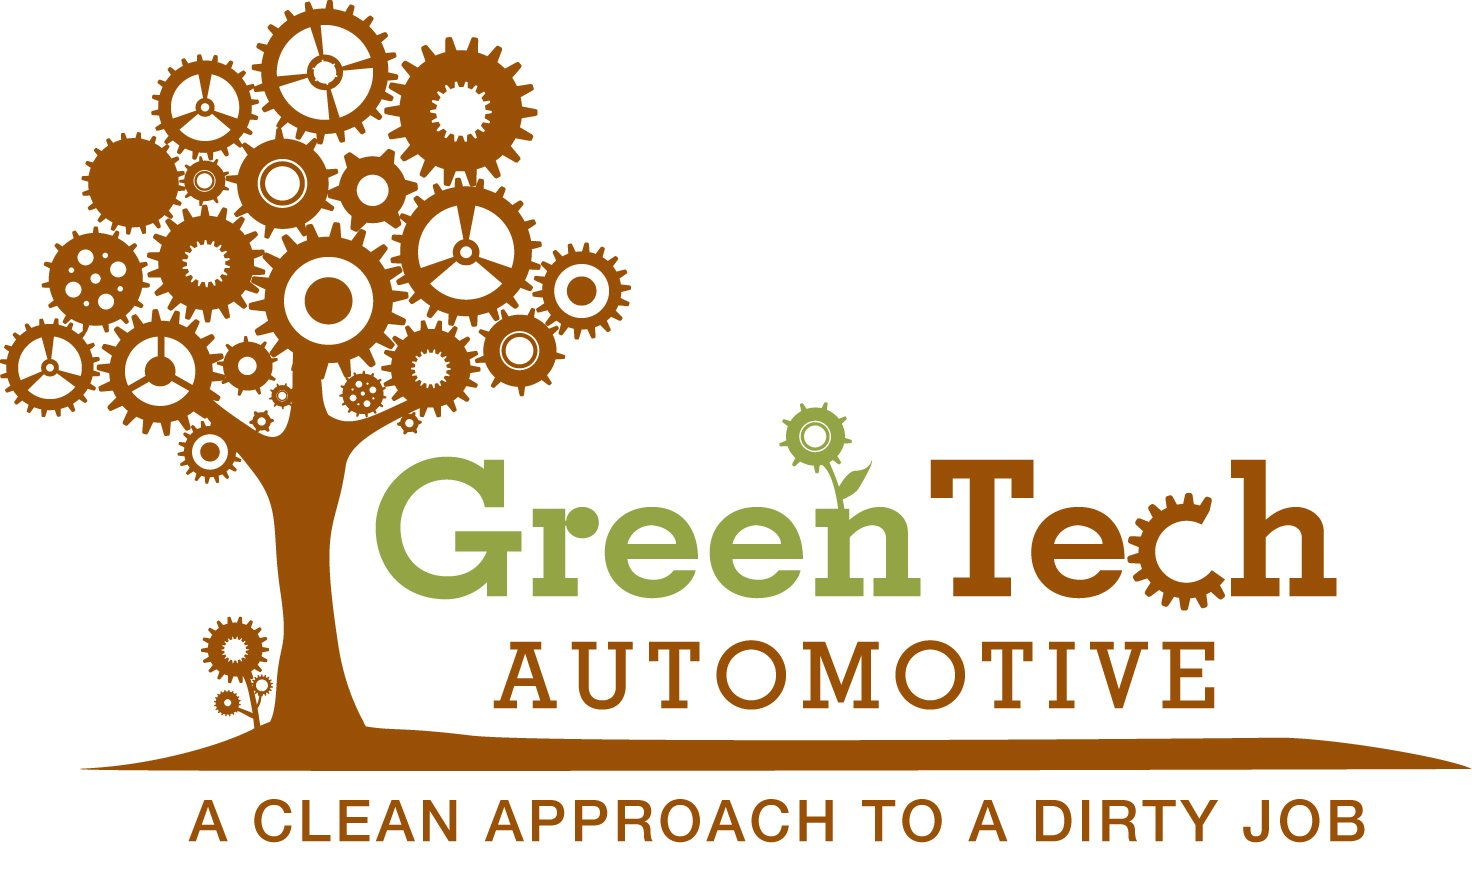 image of Greentech Automotive